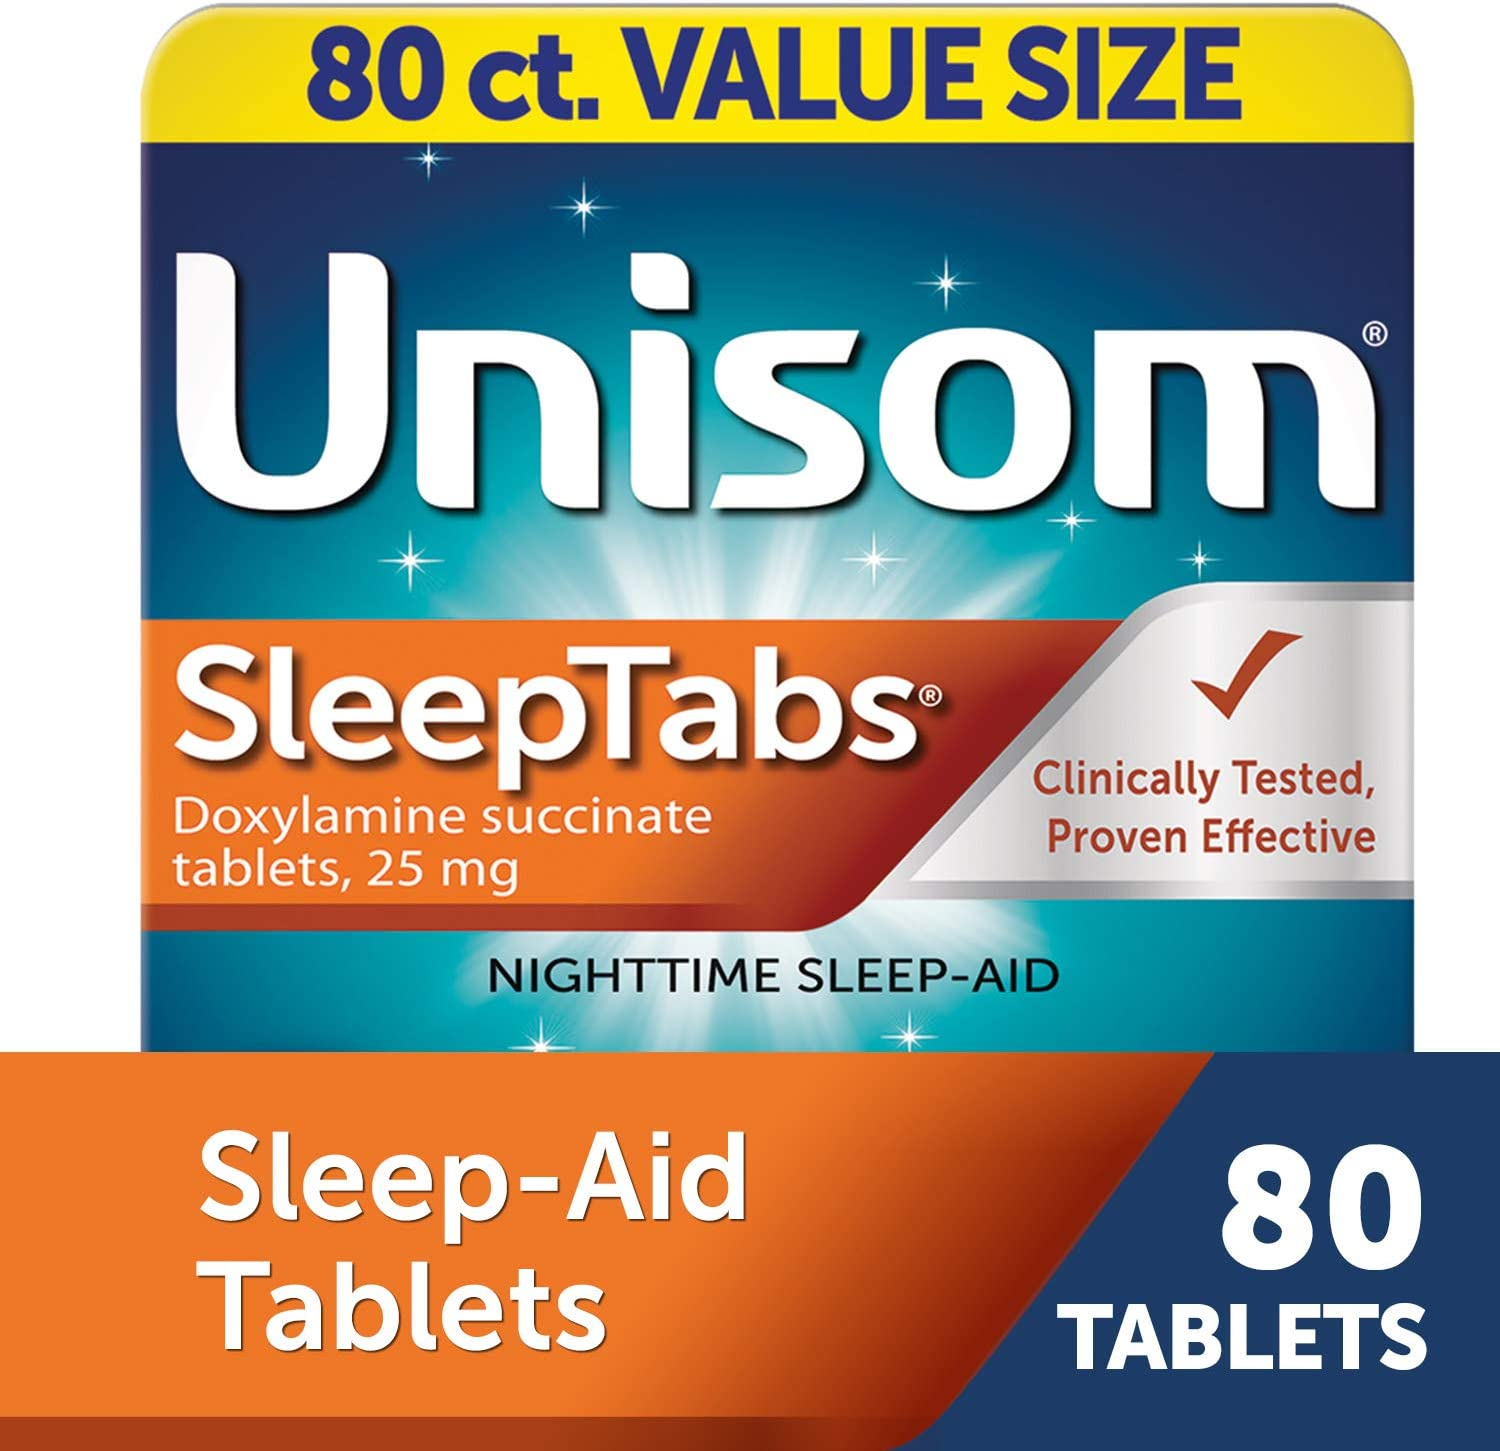 Unisom SleepTabs, 80 Count, Non-Habit Forming Sleep Aid, Great for Difficulty Falling Asleep Due to Anxiety or Stress, Fall Asleep Faster and Wake Up Feeling Refreshed